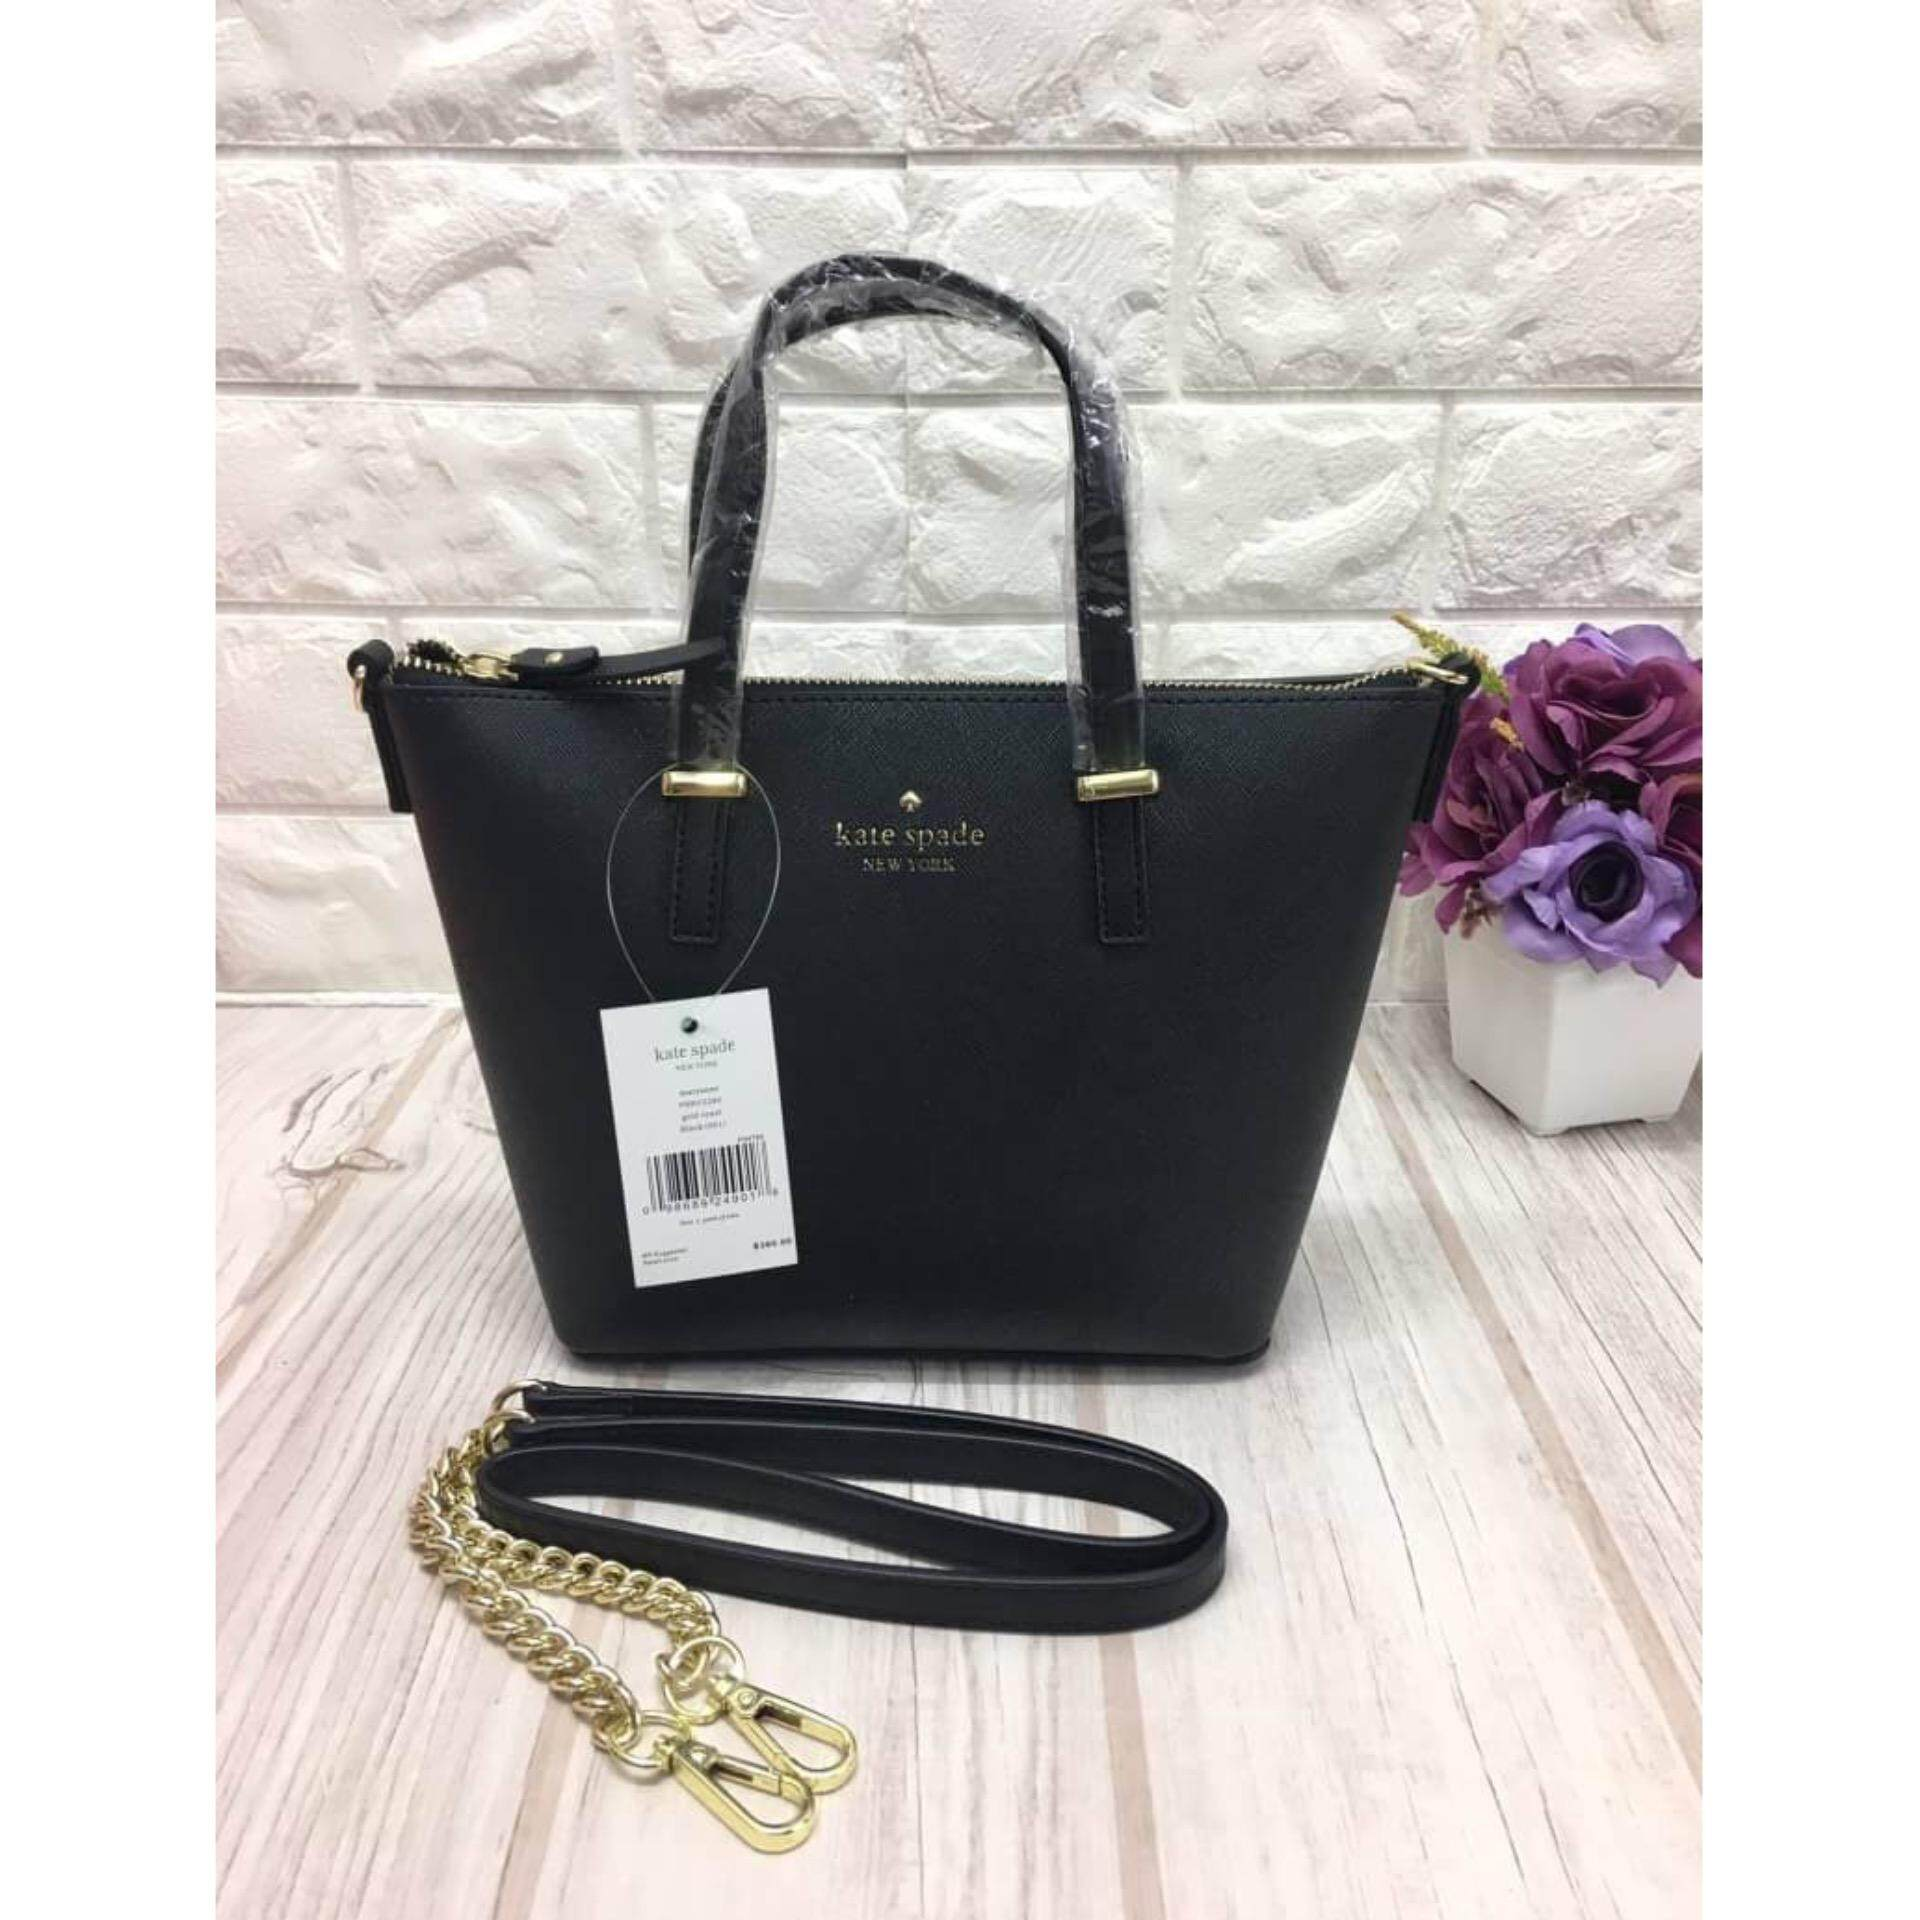 New In Best Seller!!!  Kate spade new york Saffiano Bag 2017